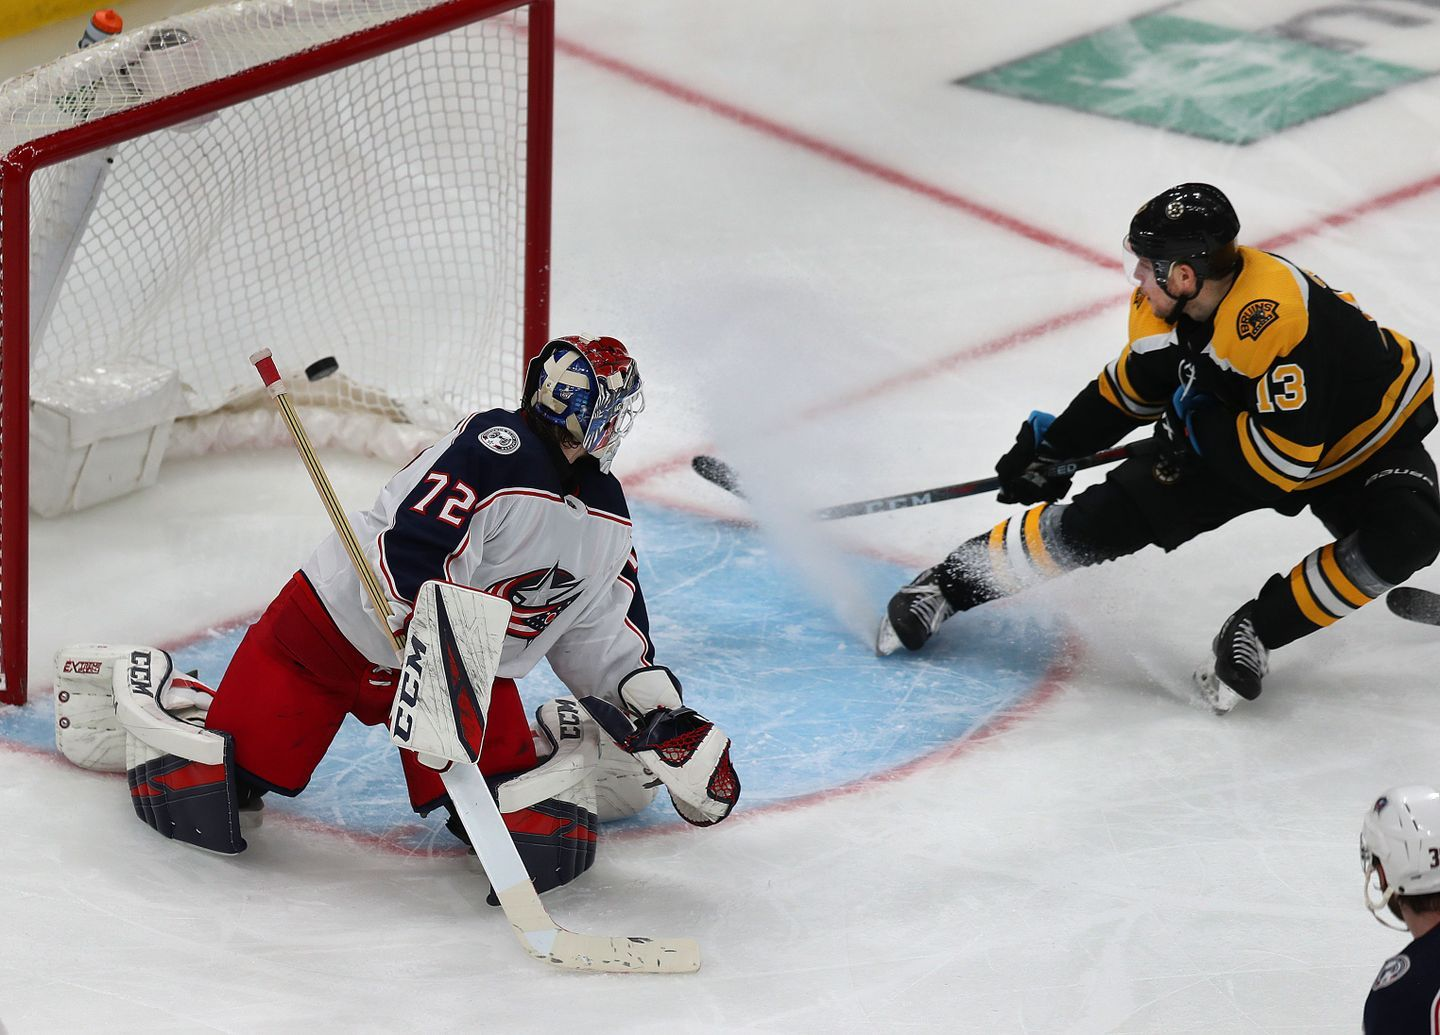 Charlie Coyle Scored 5 15 Into Overtime Boosting The Bruins By A 3 2 Score To Open The Second Round At Td Garden Thursday N Goalie Stanley Cup Playoffs Bruins